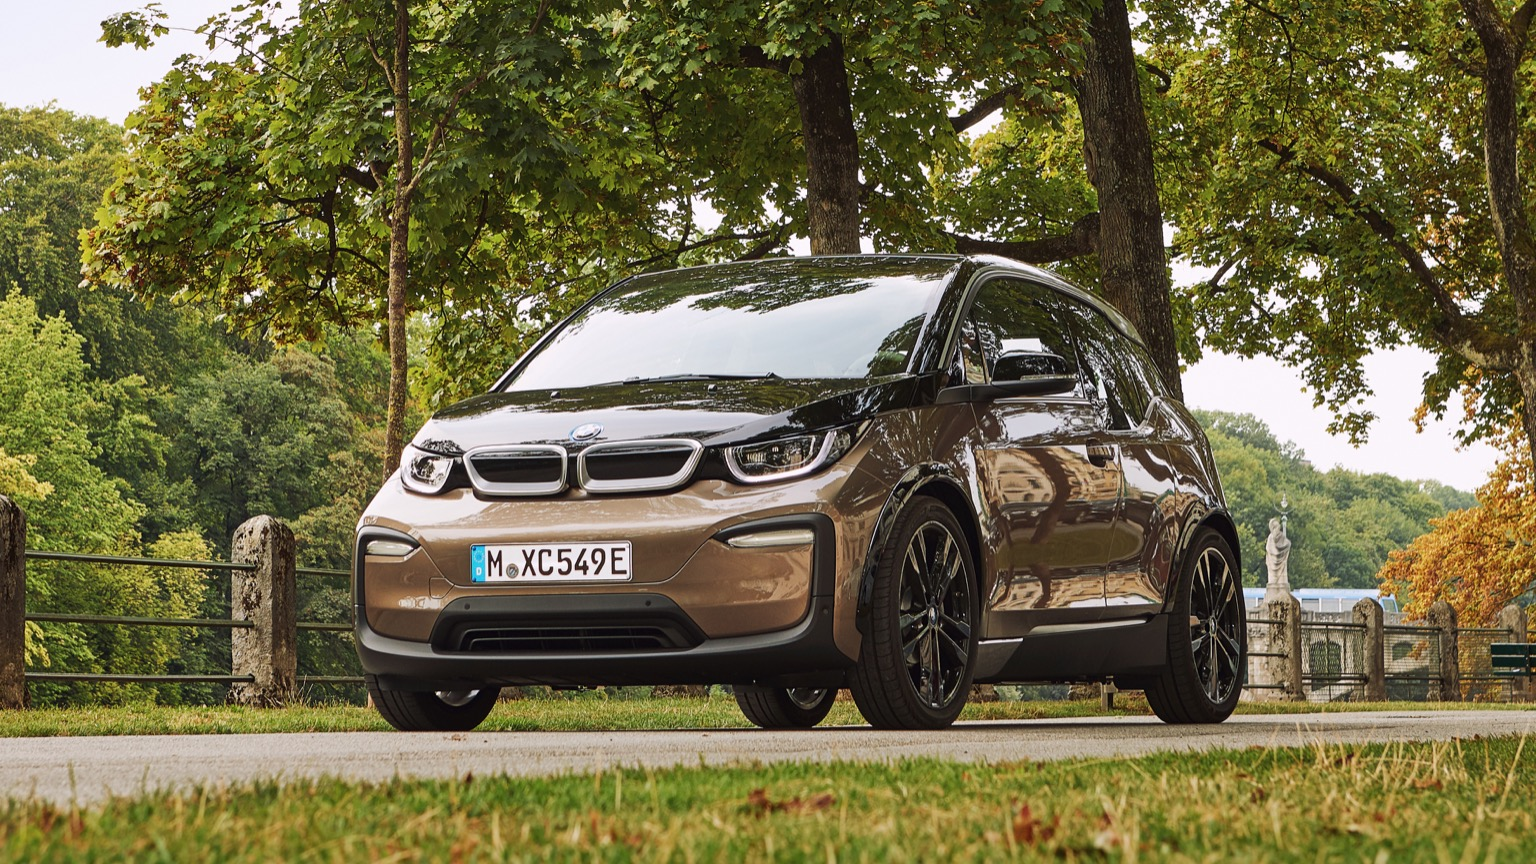 BMW i3s 120 Ah price and specifications - EV Database